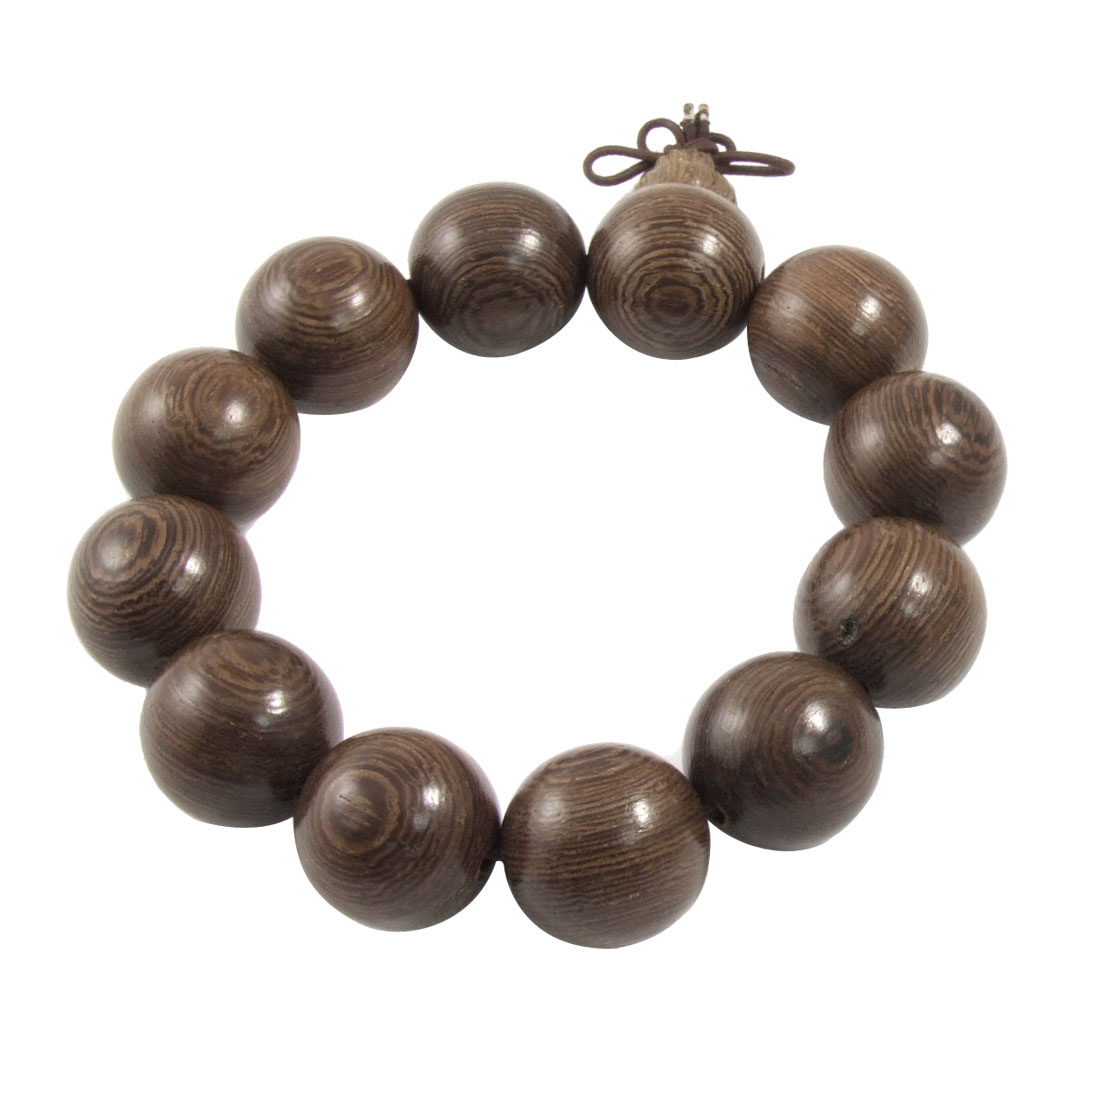 Brown 19mm Dia Wood Round Beads Growth Ring Detail Elastic Beacelet